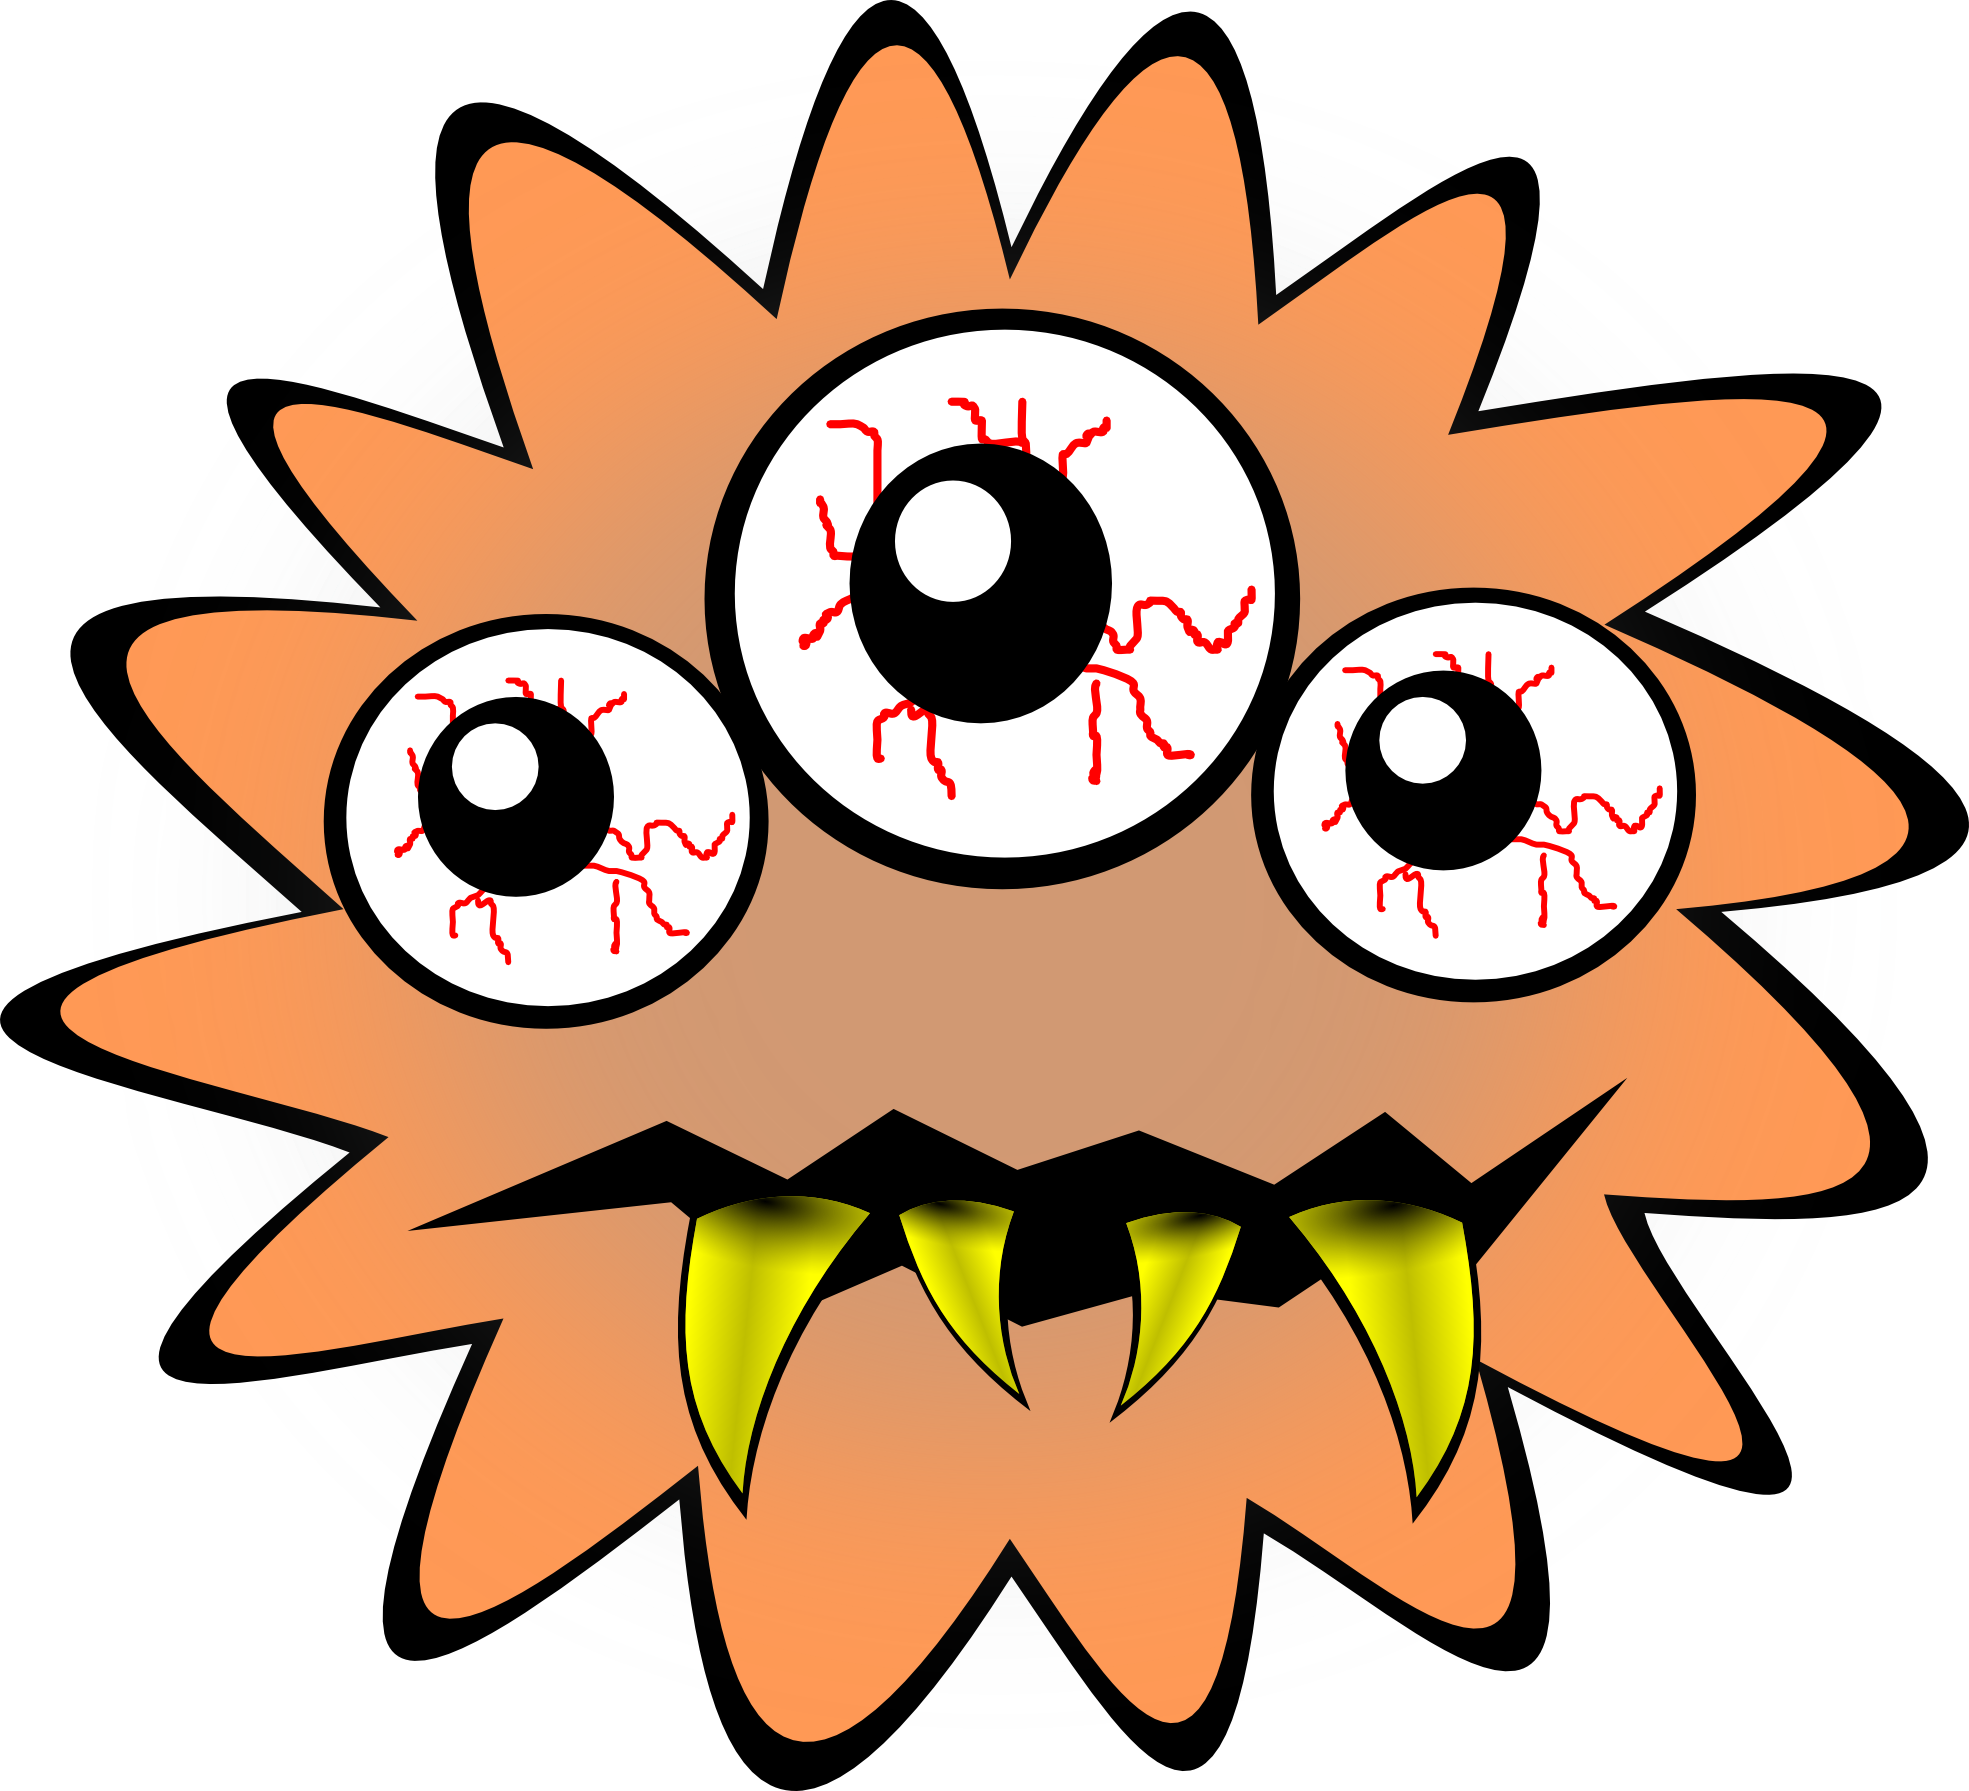 Bacteria clipart free images 2